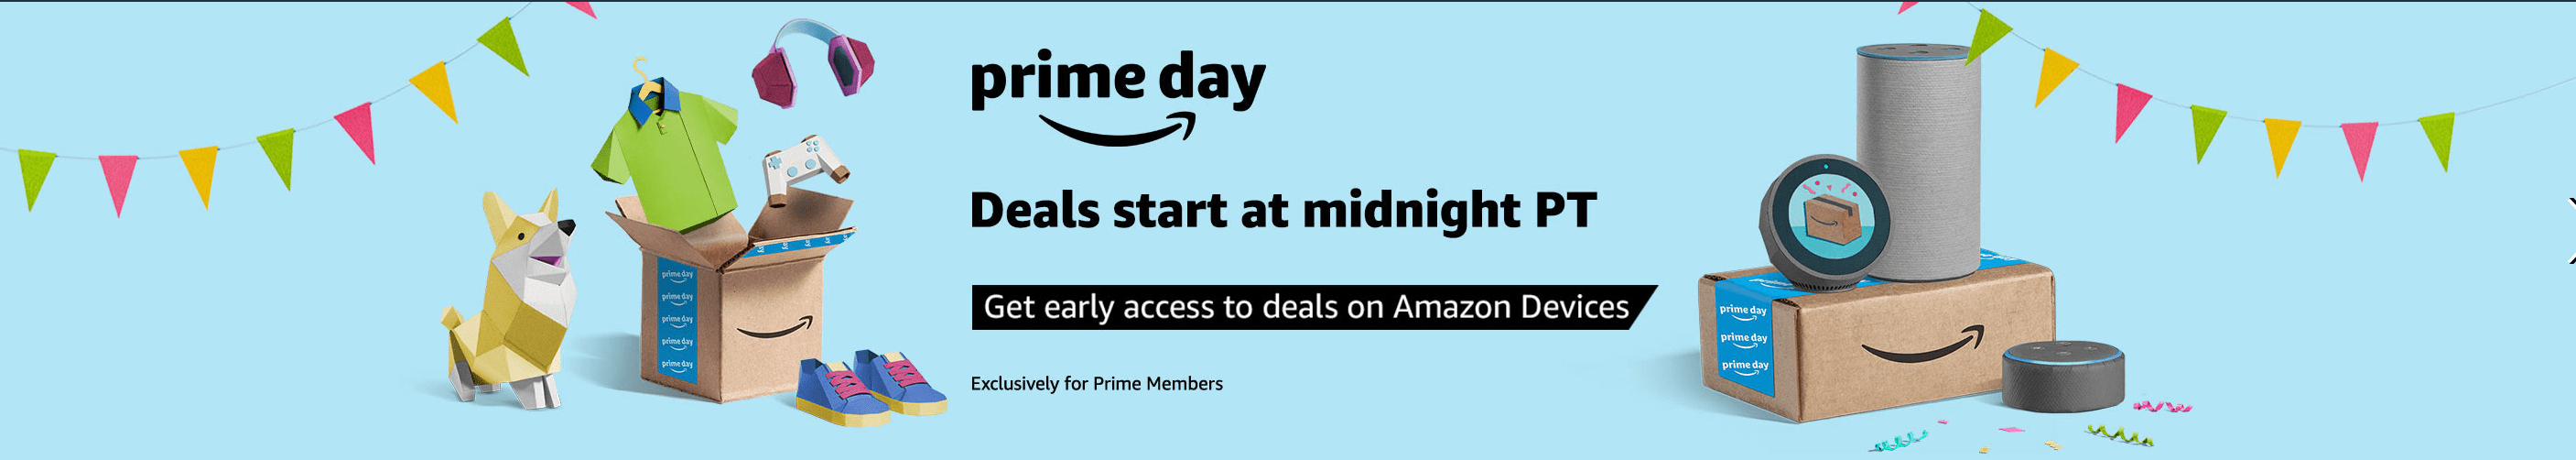 How Amazon Will Trick You Into Buying More on Prime Day